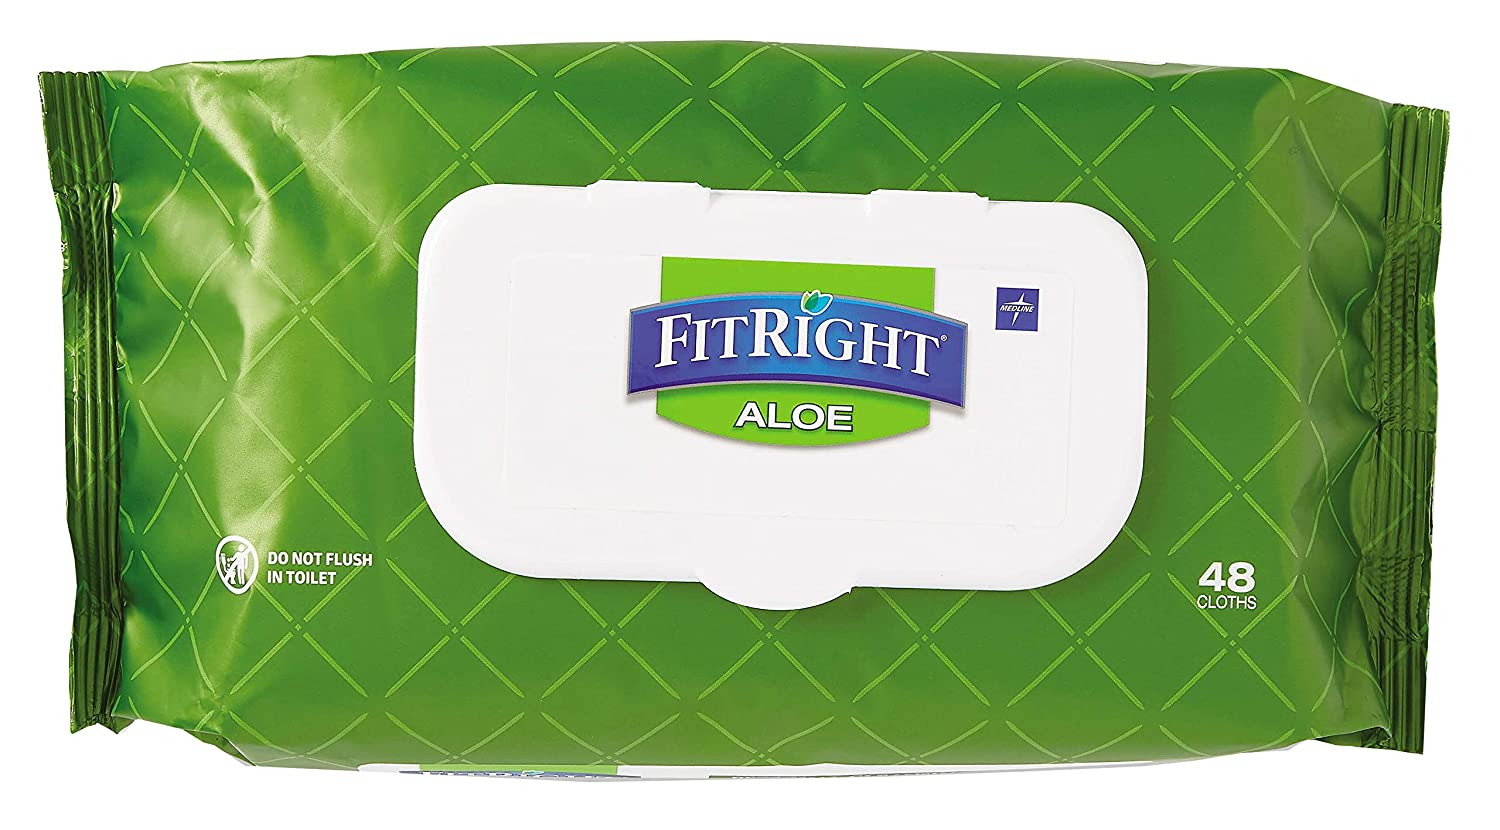 FitRight Aloe Quilted Heavyweight Personal Cleansing Cloth Wipes, Unscented, 576 Count, 8 x 12 inch Adult Large Incontinence Wipes